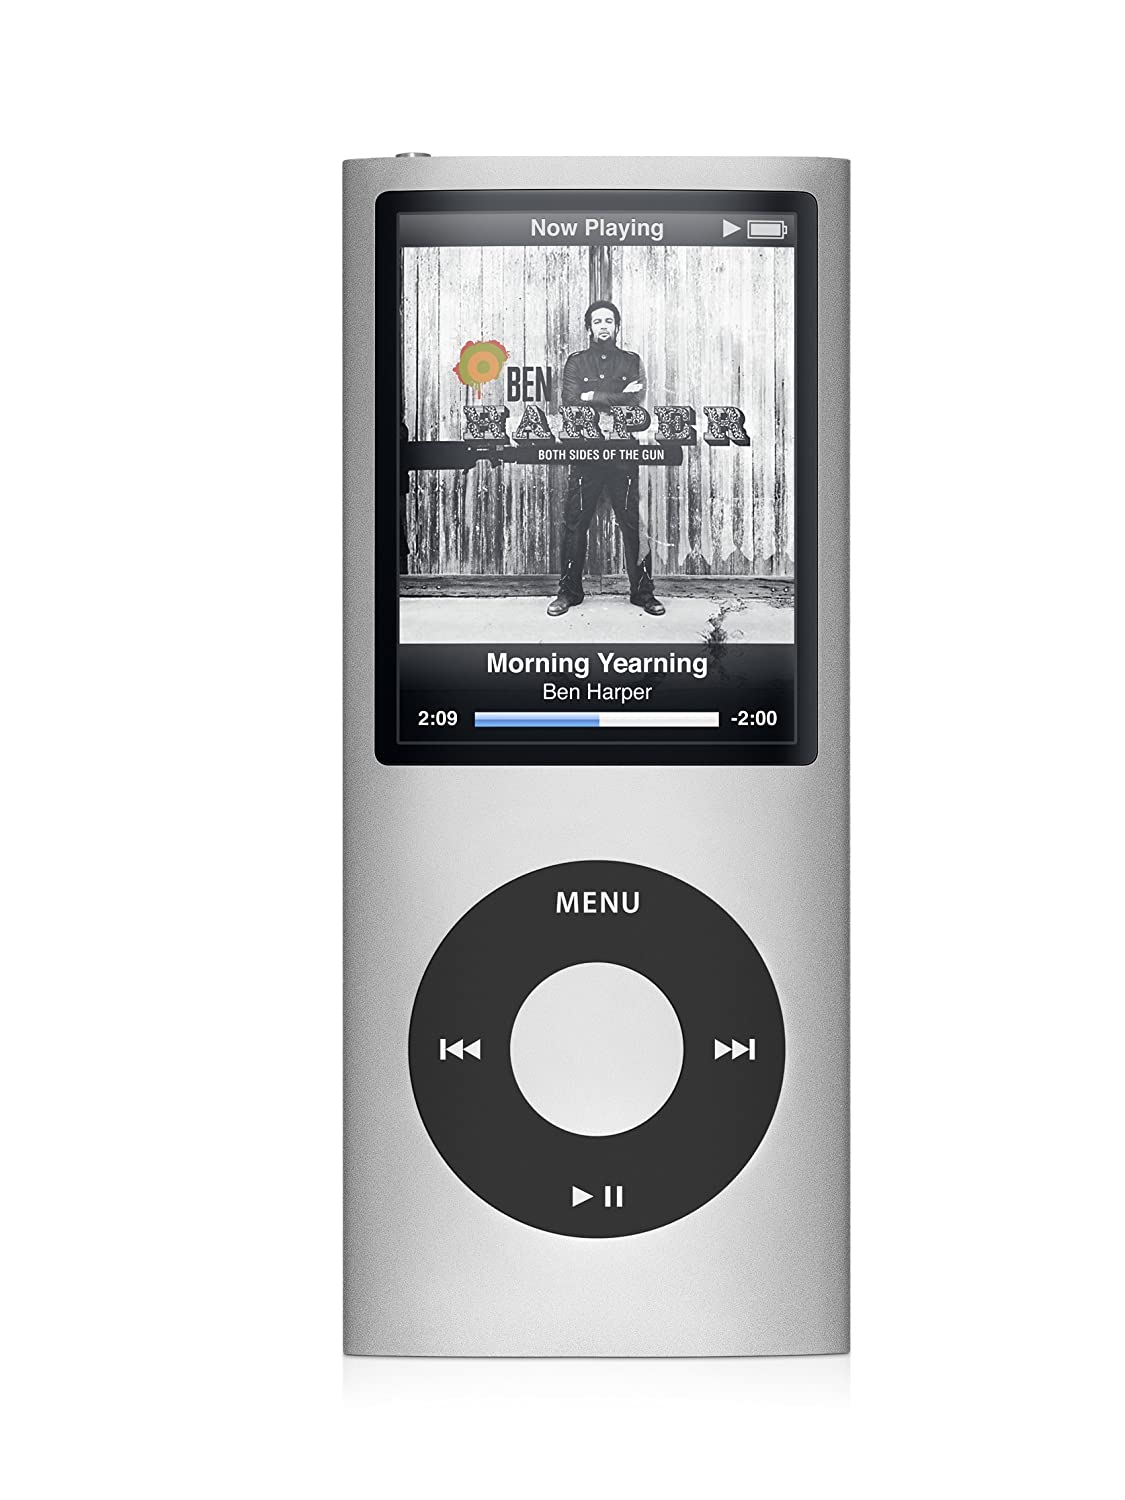 Amazon.com: Apple iPod nano 8 GB Silver (4th Generation) (Discontinued by  Manufacturer): Home Audio & Theater